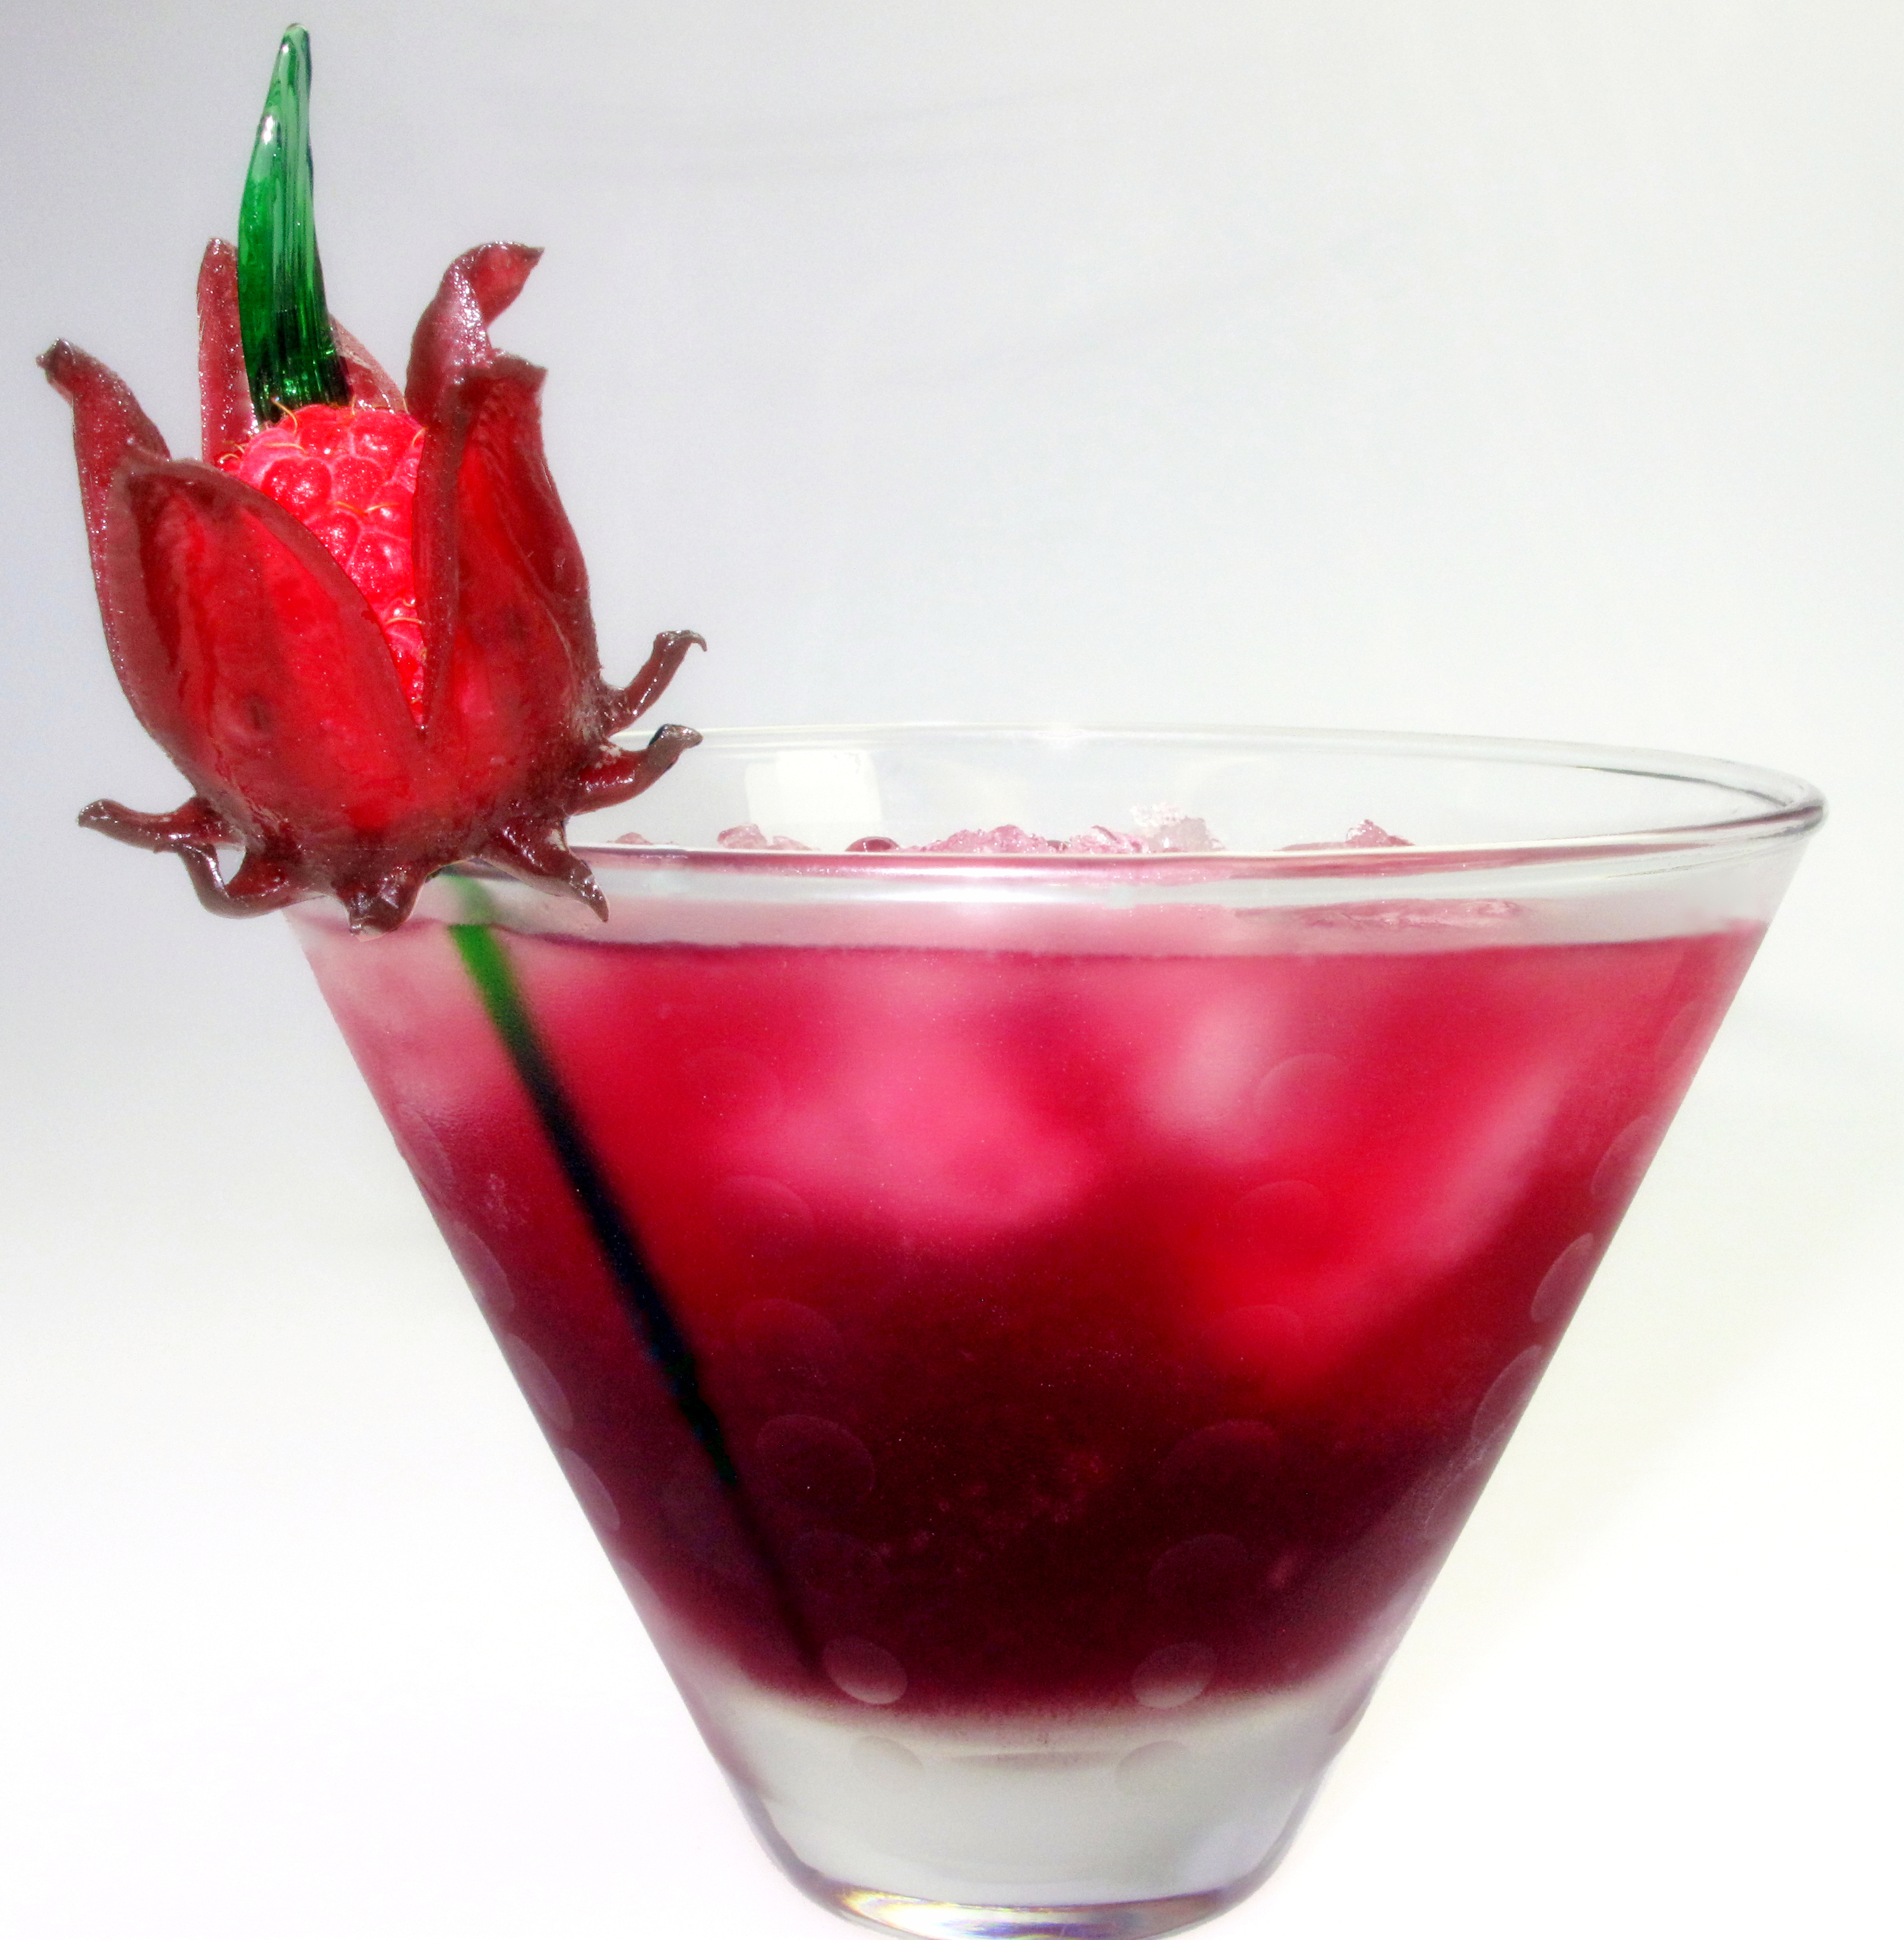 Wild hibiscus flowers in syrup rose syrup fine gourmet range hibiscus margarita by emilio french maid margarita 001 dhlflorist Choice Image